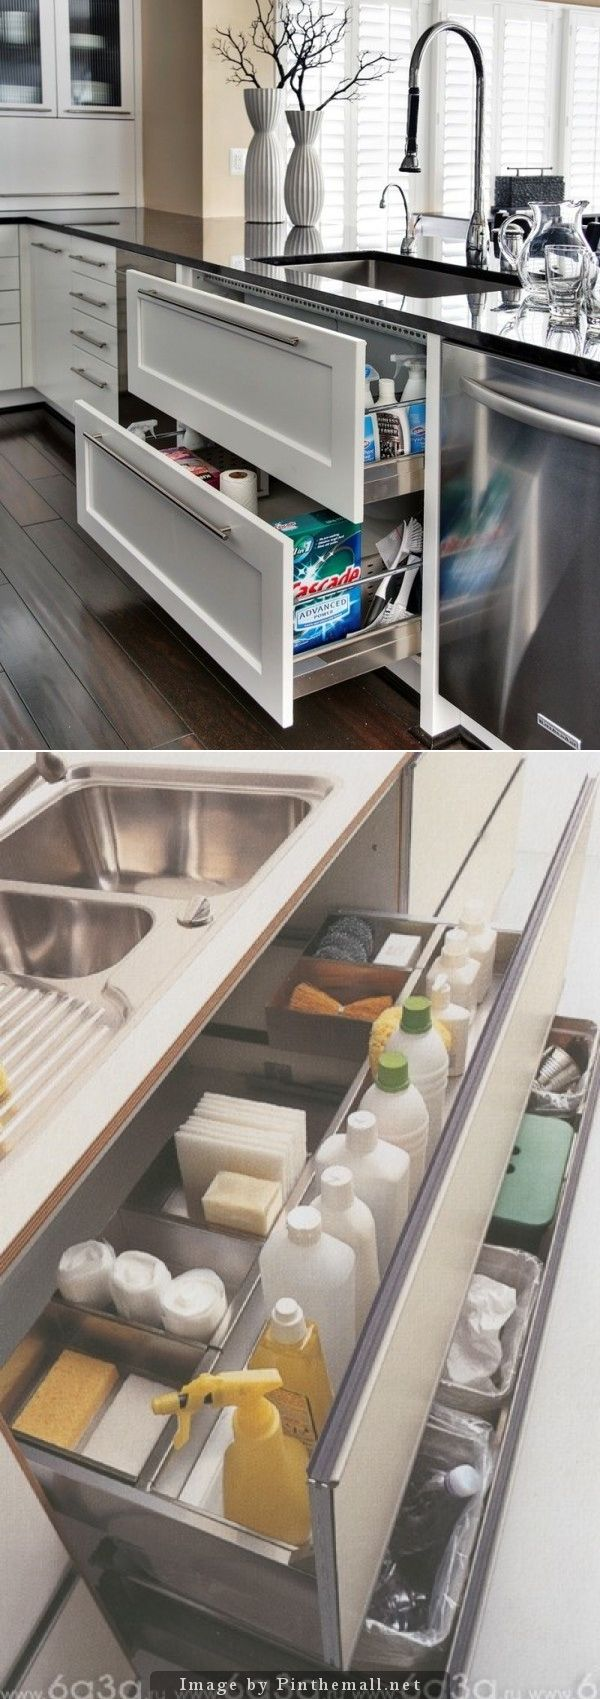 U   Under Sink Two Drawers, Recycle And Trash On The Bottom. Do Not Need  All Compartments On Top But Need Some For Cleaning Supplies And Dishwasher  ...